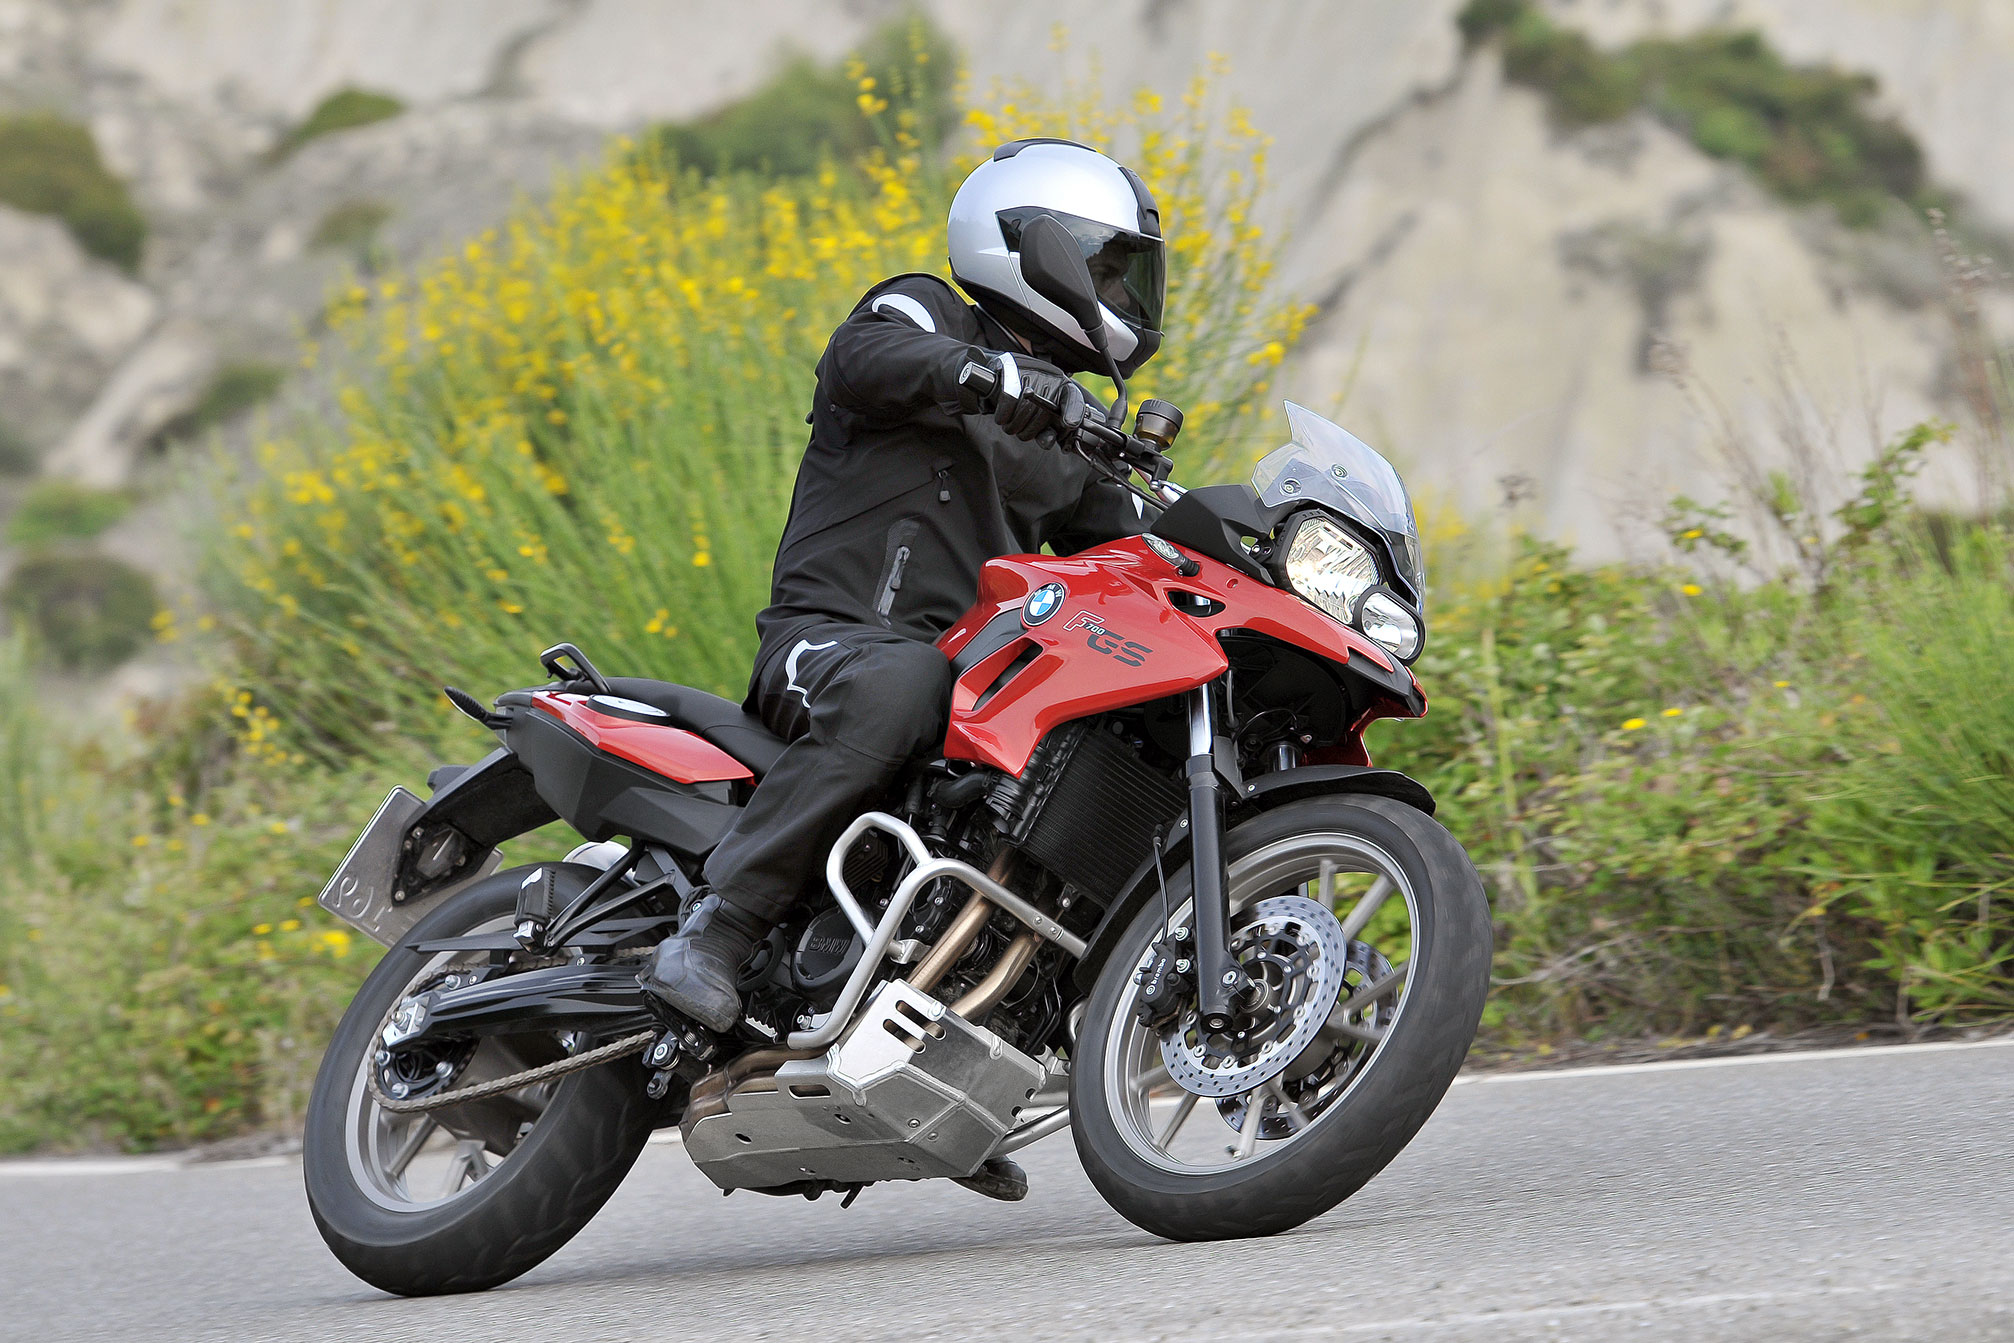 2014 BMW F700GS Review